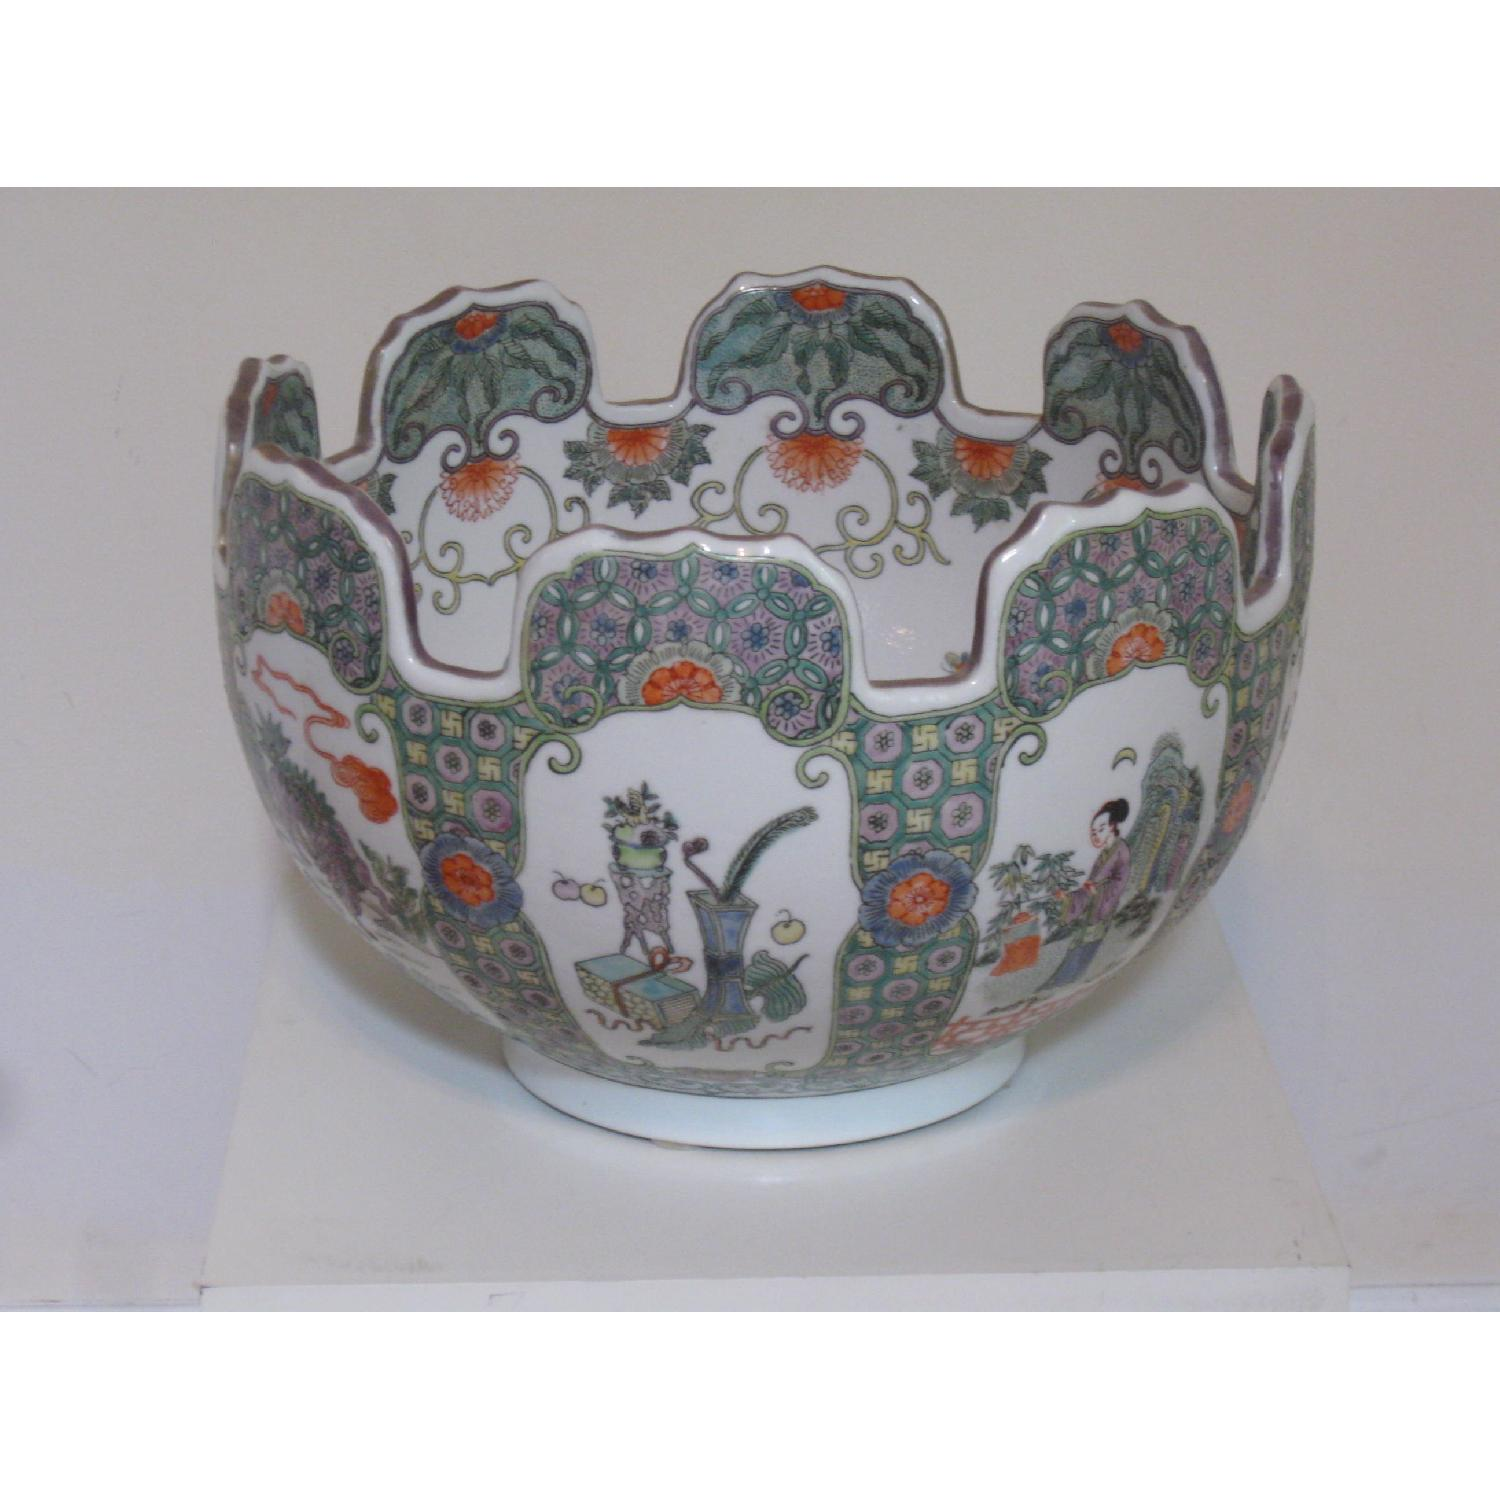 Chinese Porcelain Bowl with Scalloped Top - image-1